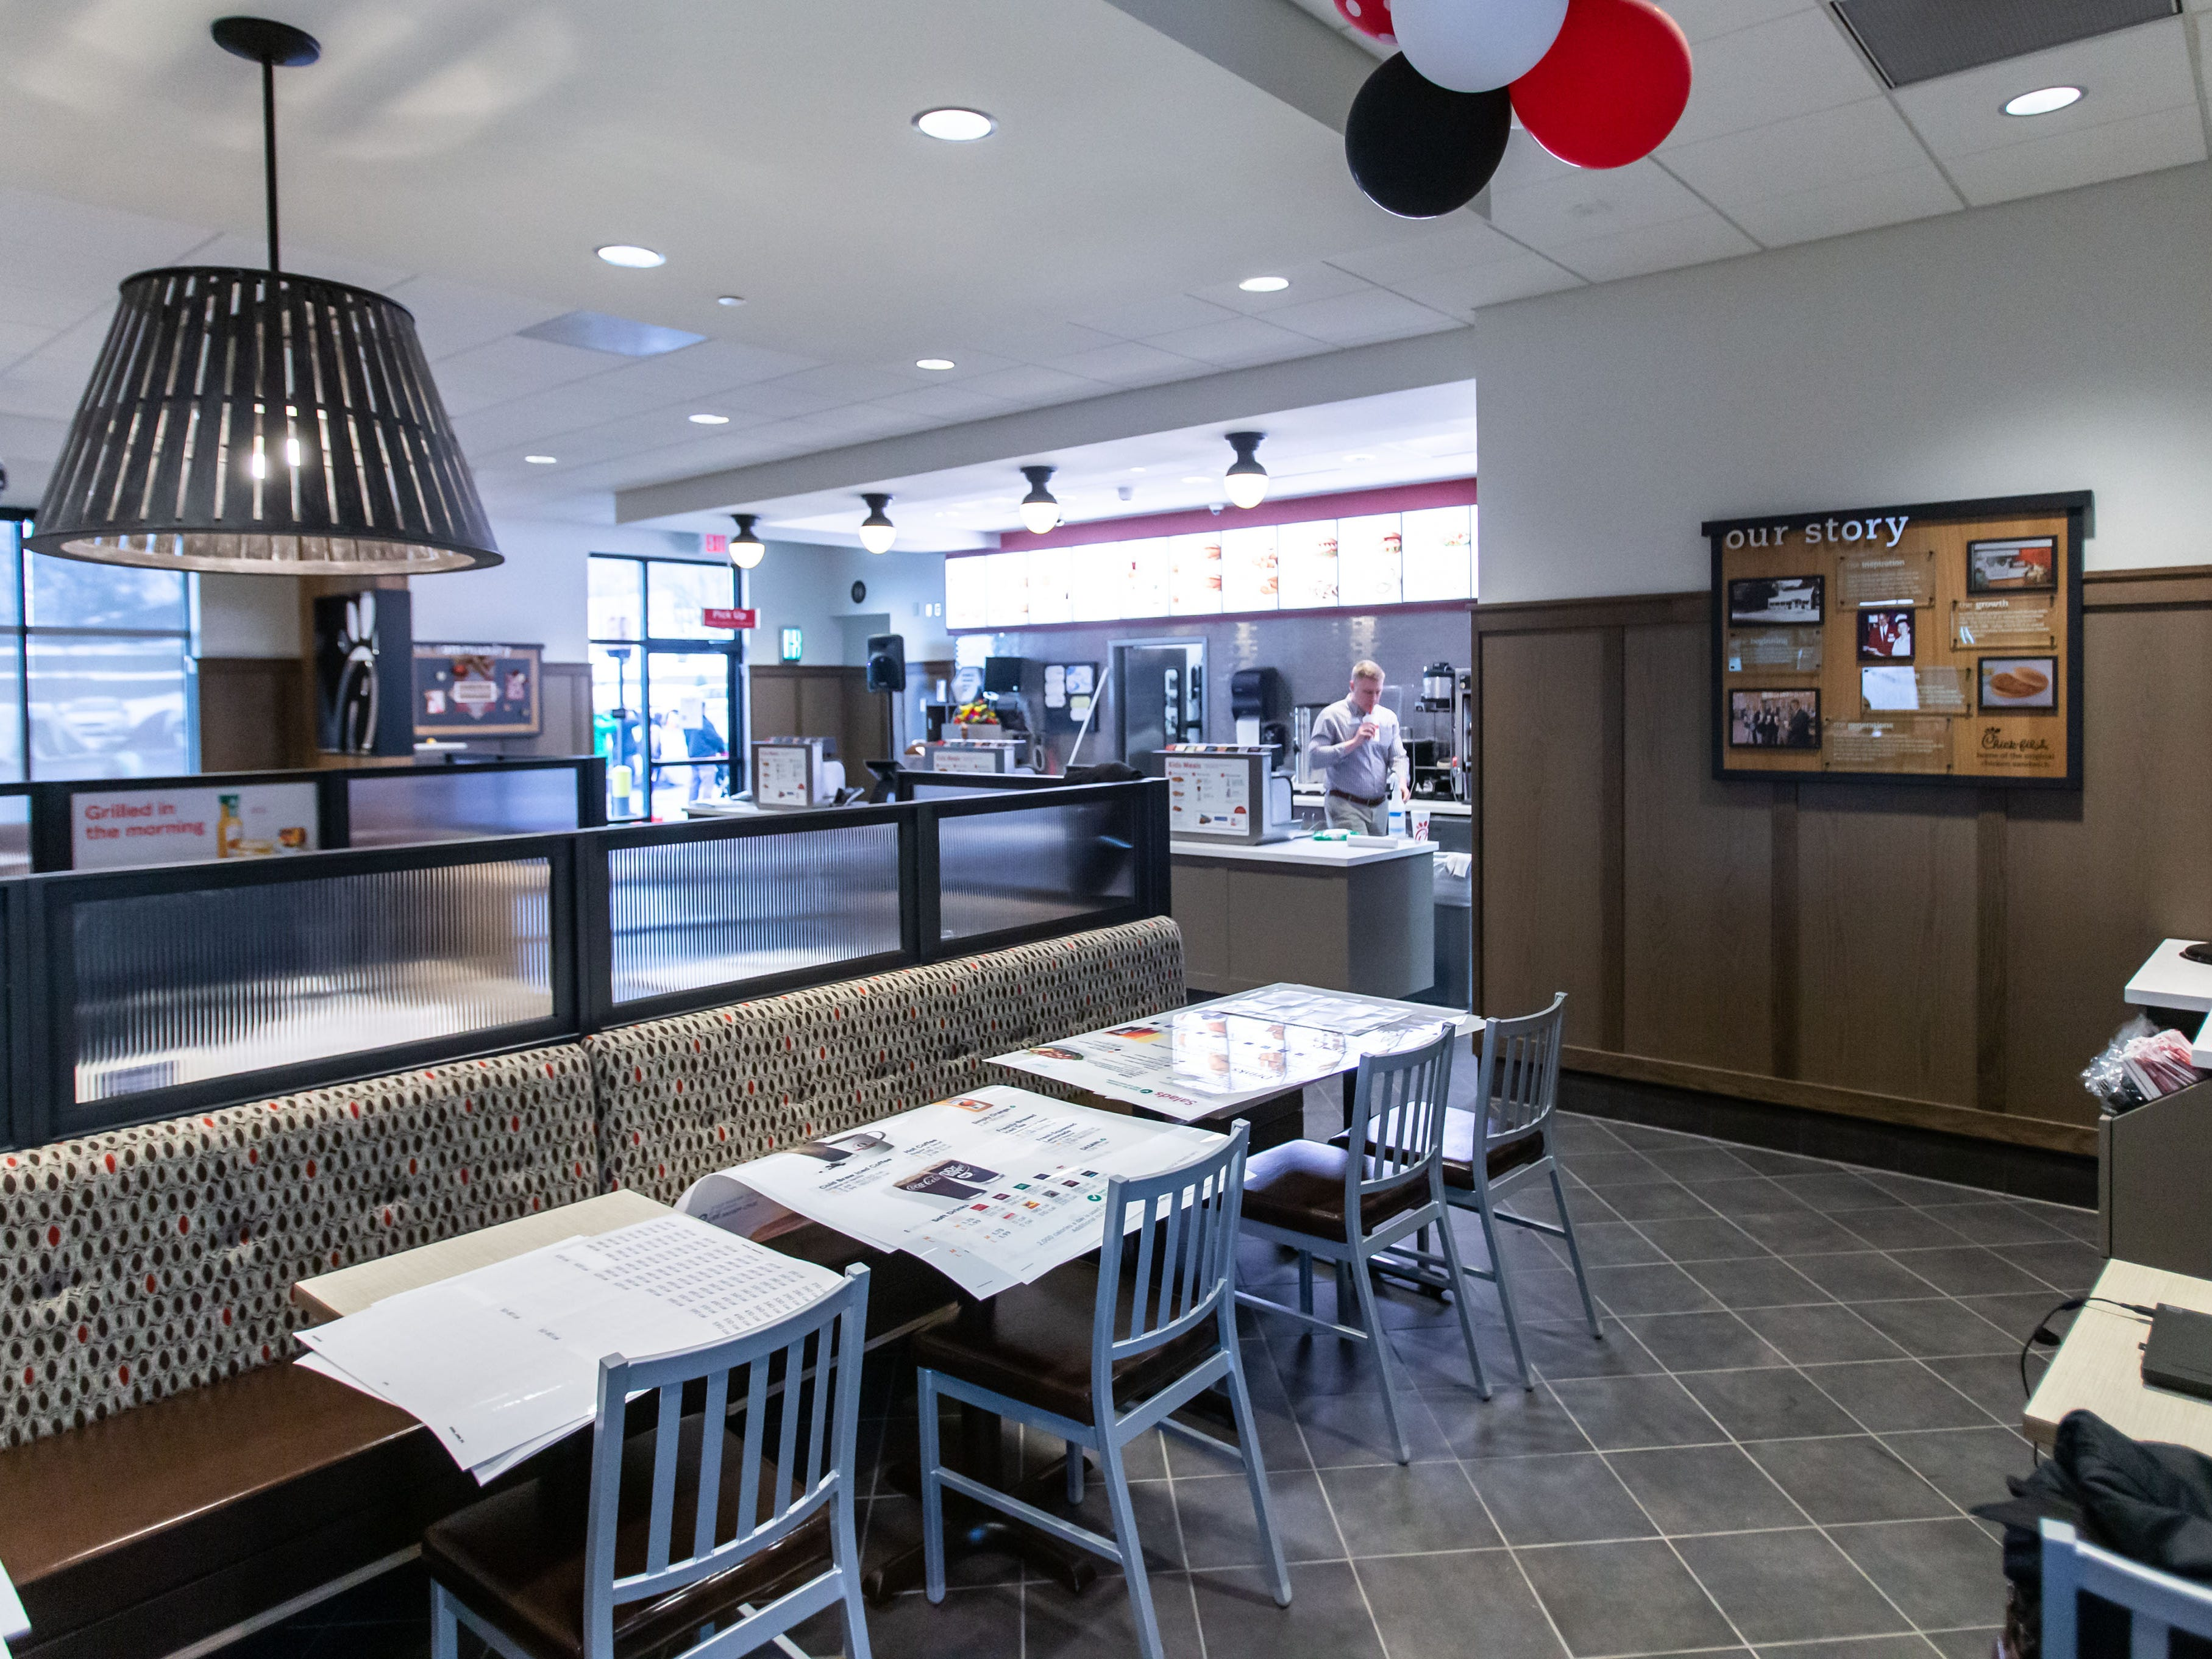 Employees prepare the new Chick-fil-A location at 1454 Capitol Dr. in Pewaukee on Wednesday, March 13, ahead of Thursday's grand opening.